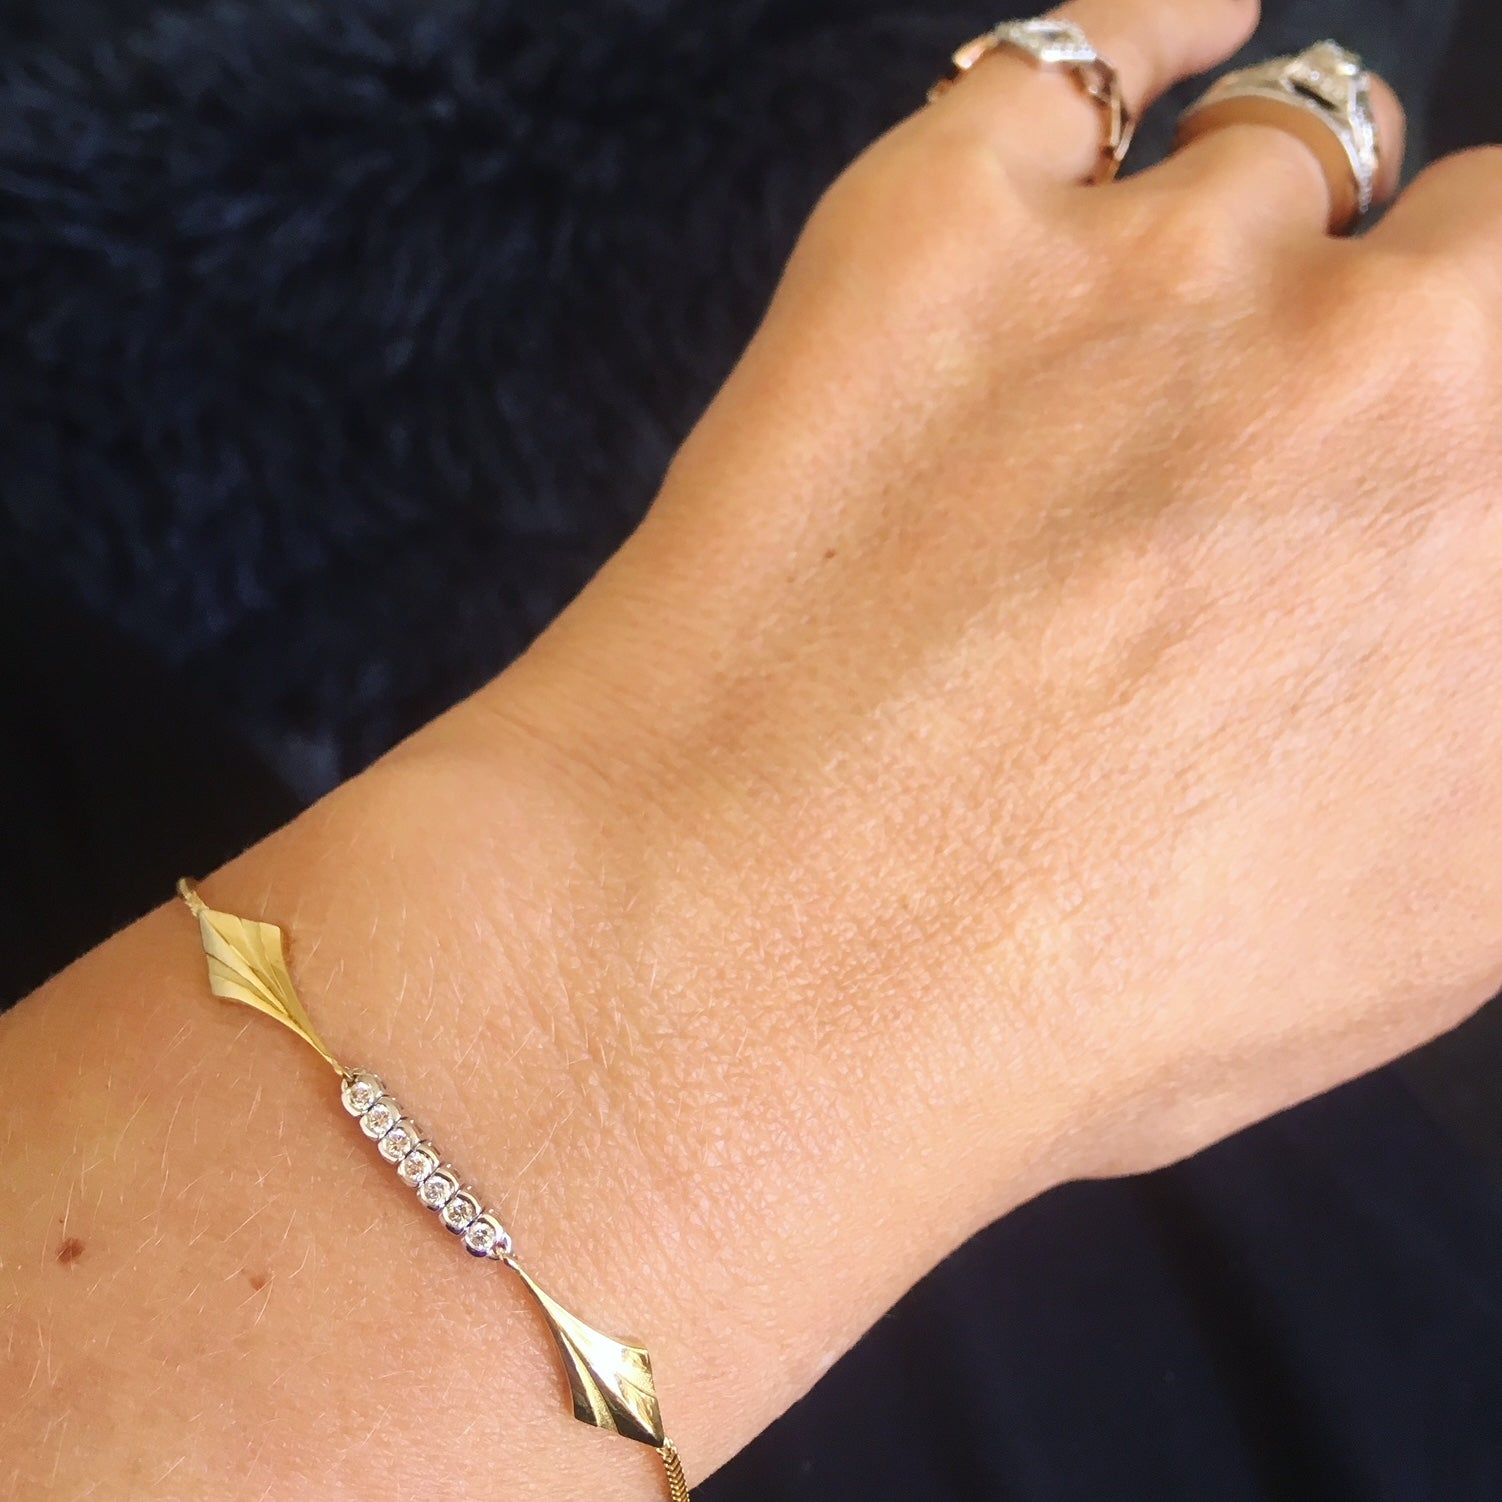 Hand image gold diamond bracelet